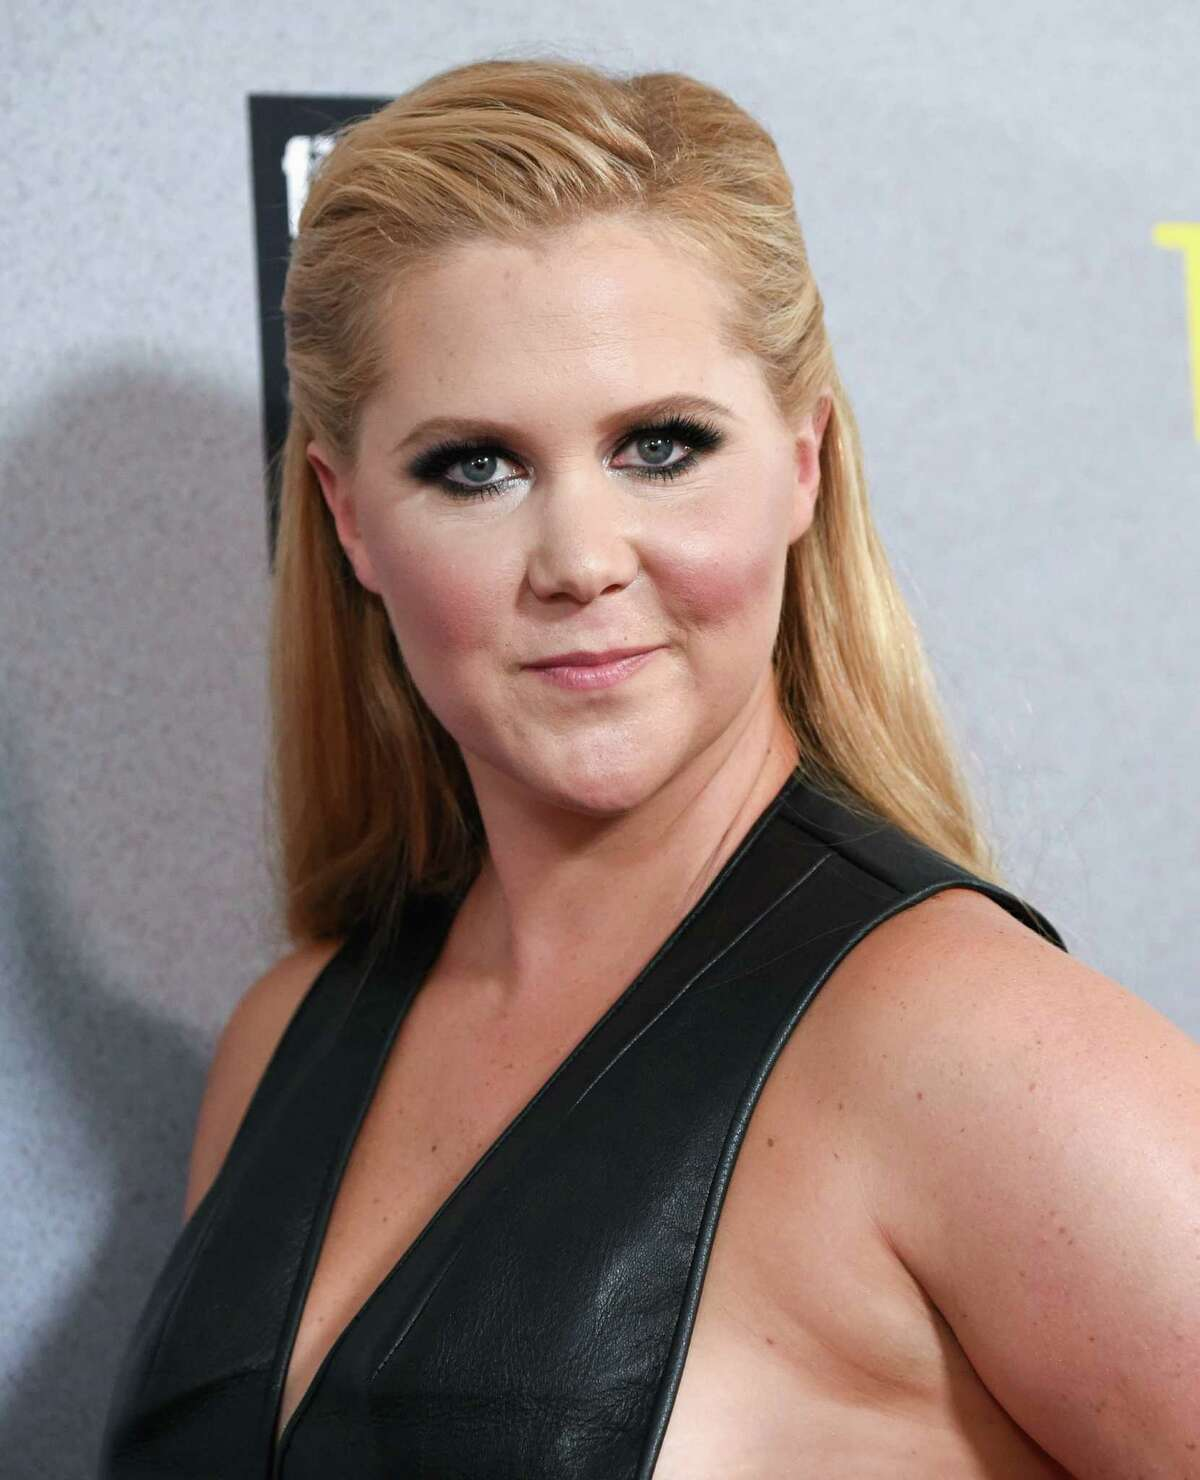 FILE - In this July 14, 2015 file photo, actress Amy Schumer attends the world premiere of